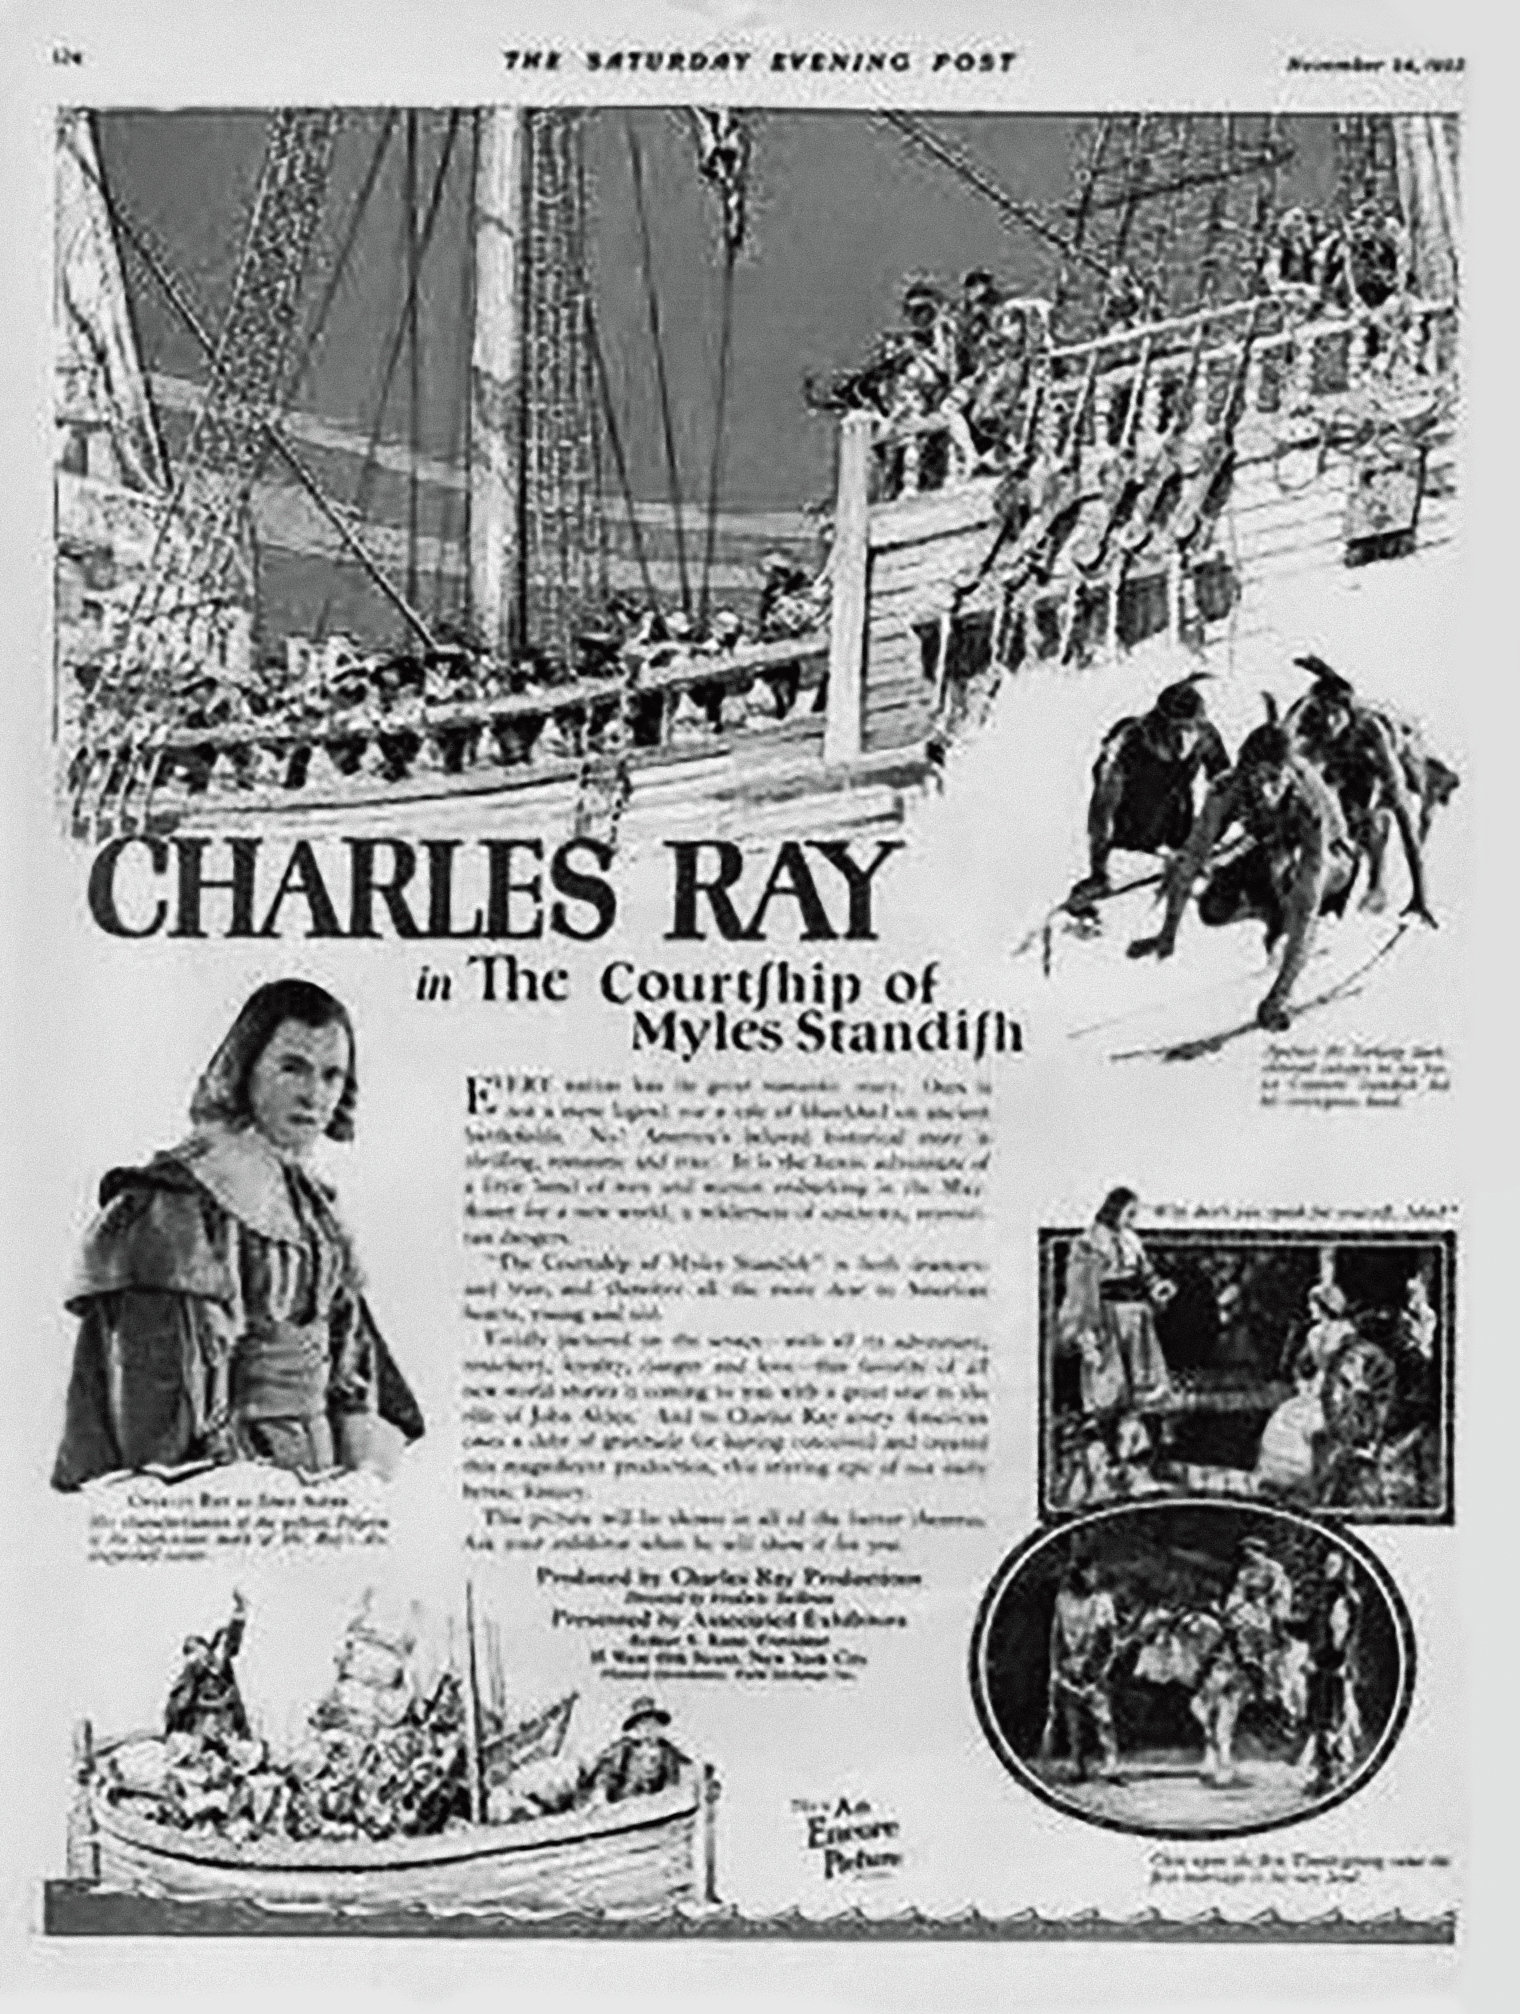 Charles Ray film